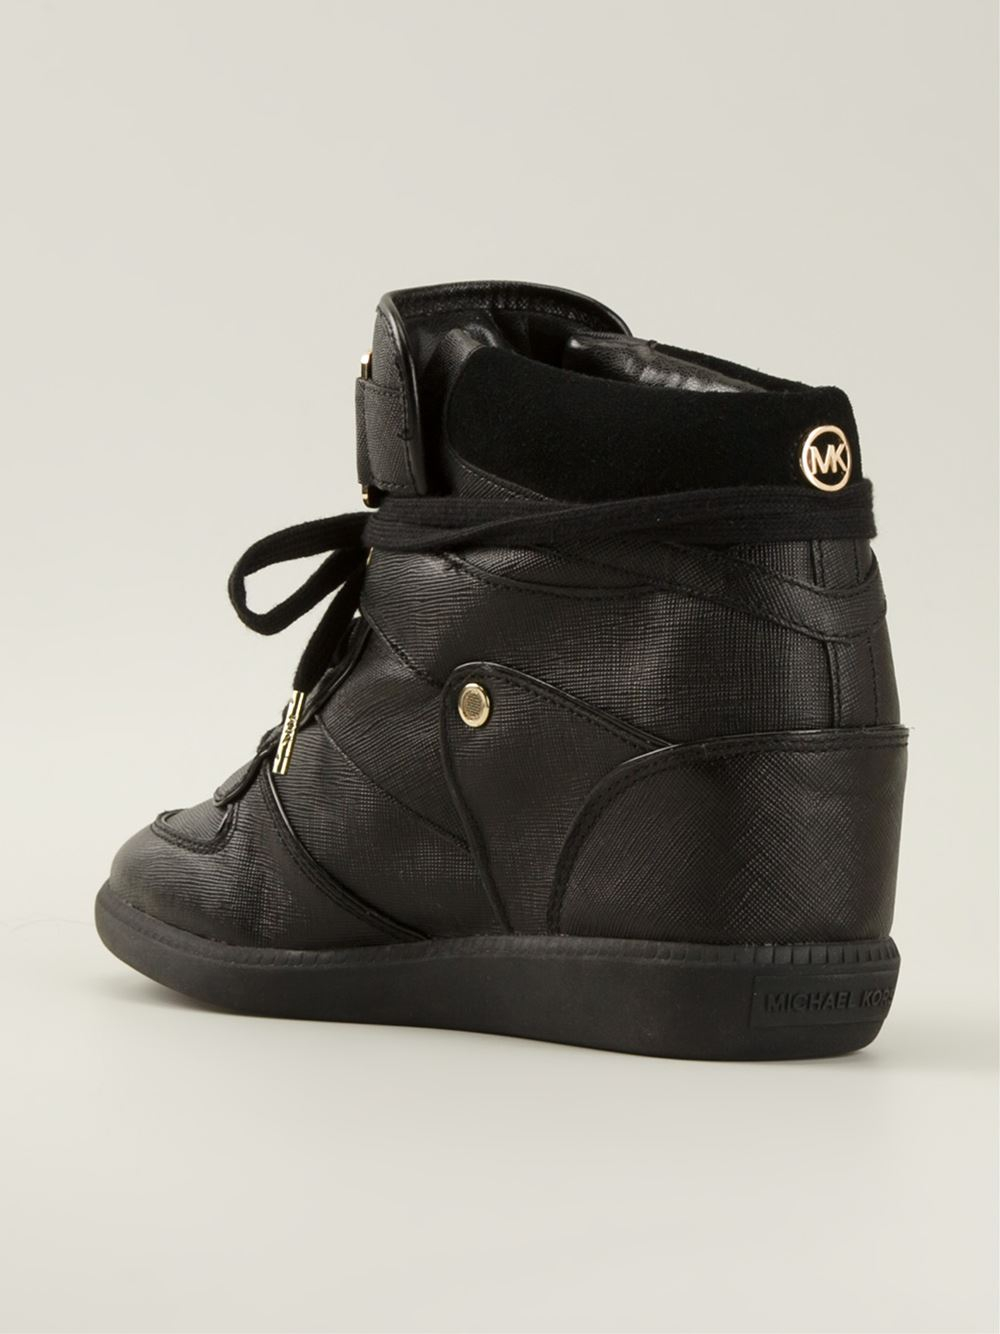 michael michael kors concealed wedge hi top sneakers in black lyst. Black Bedroom Furniture Sets. Home Design Ideas